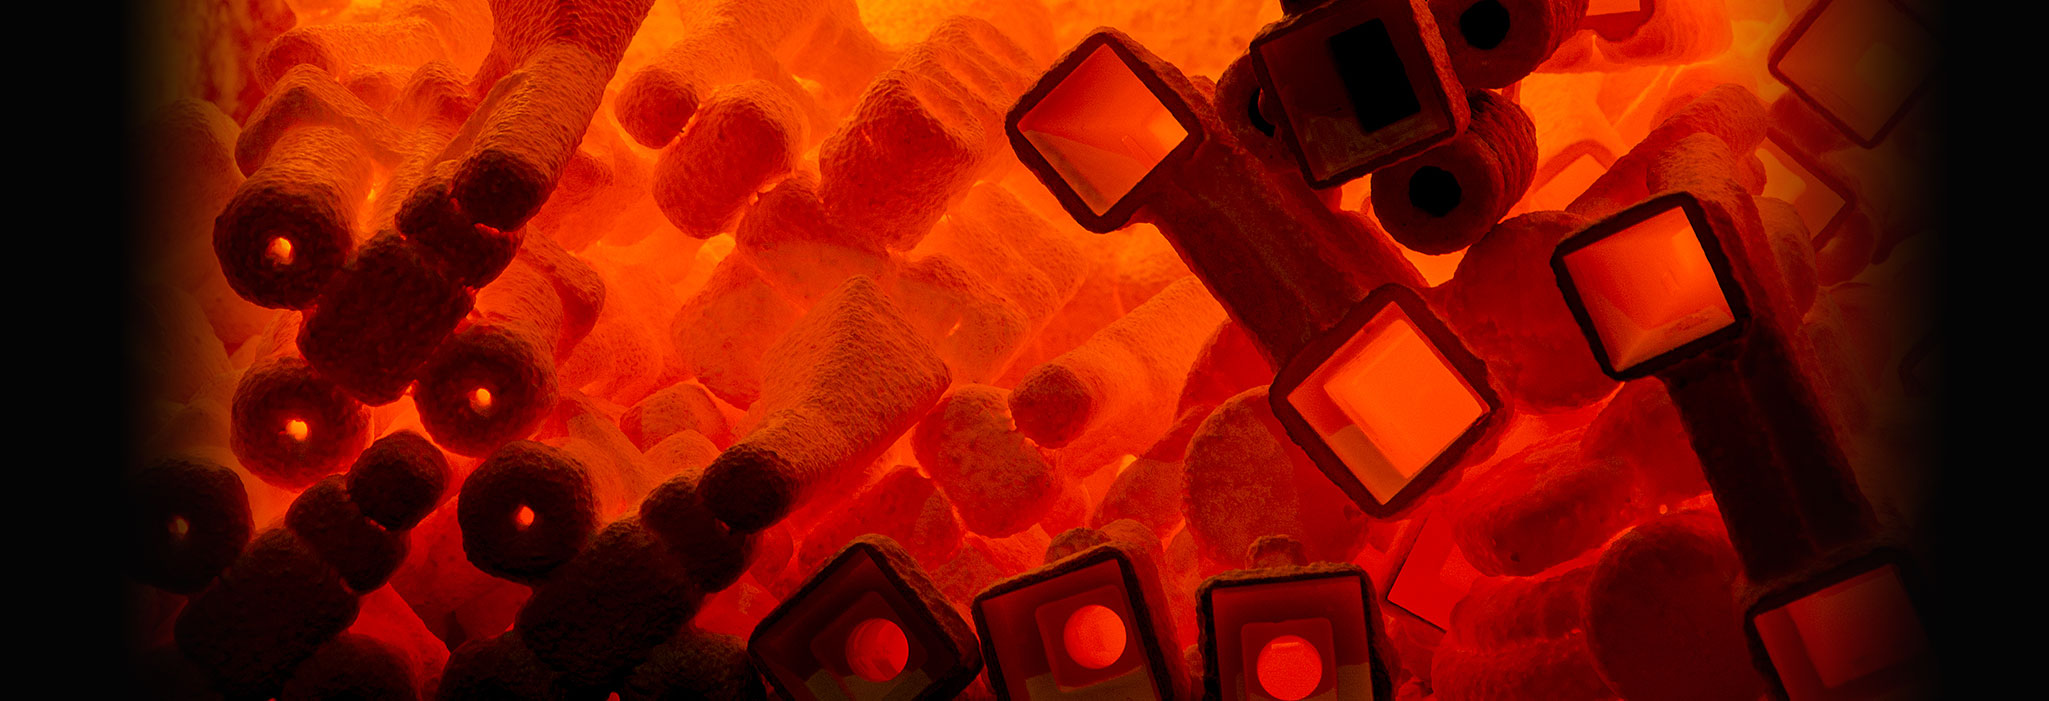 investment casting red hot glowing molds in kiln